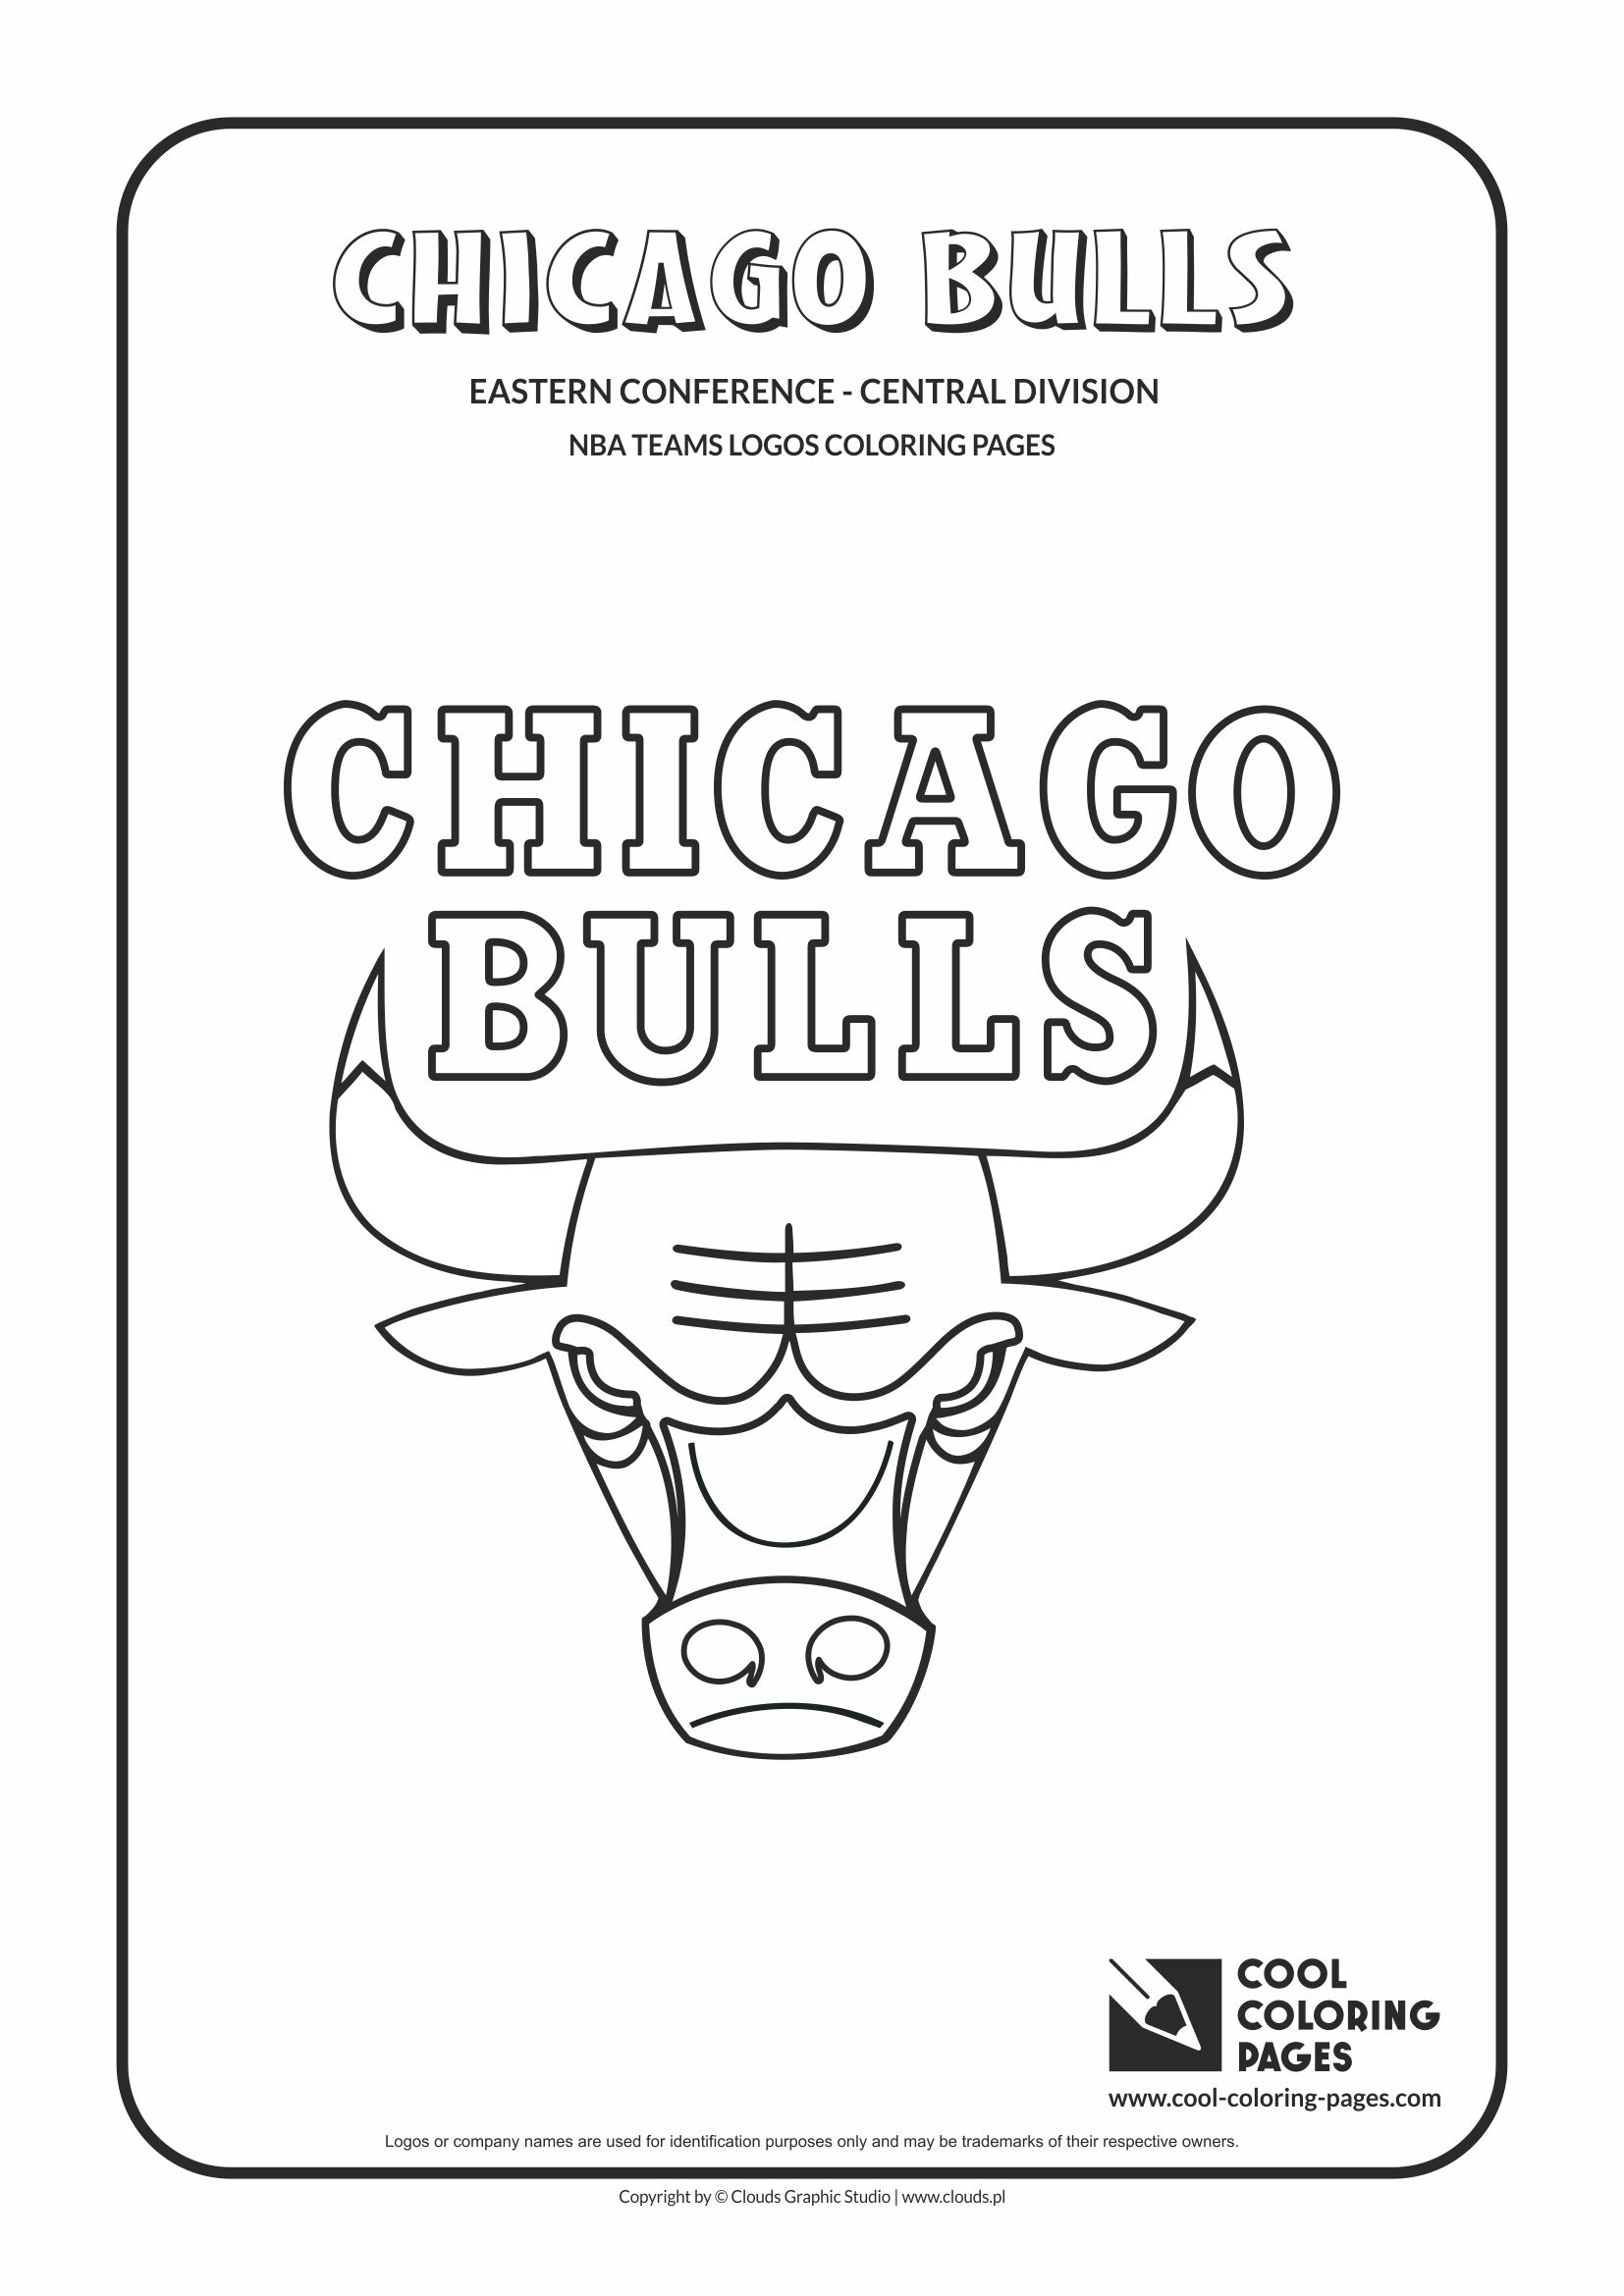 Cool Coloring Pages Chicago Bulls